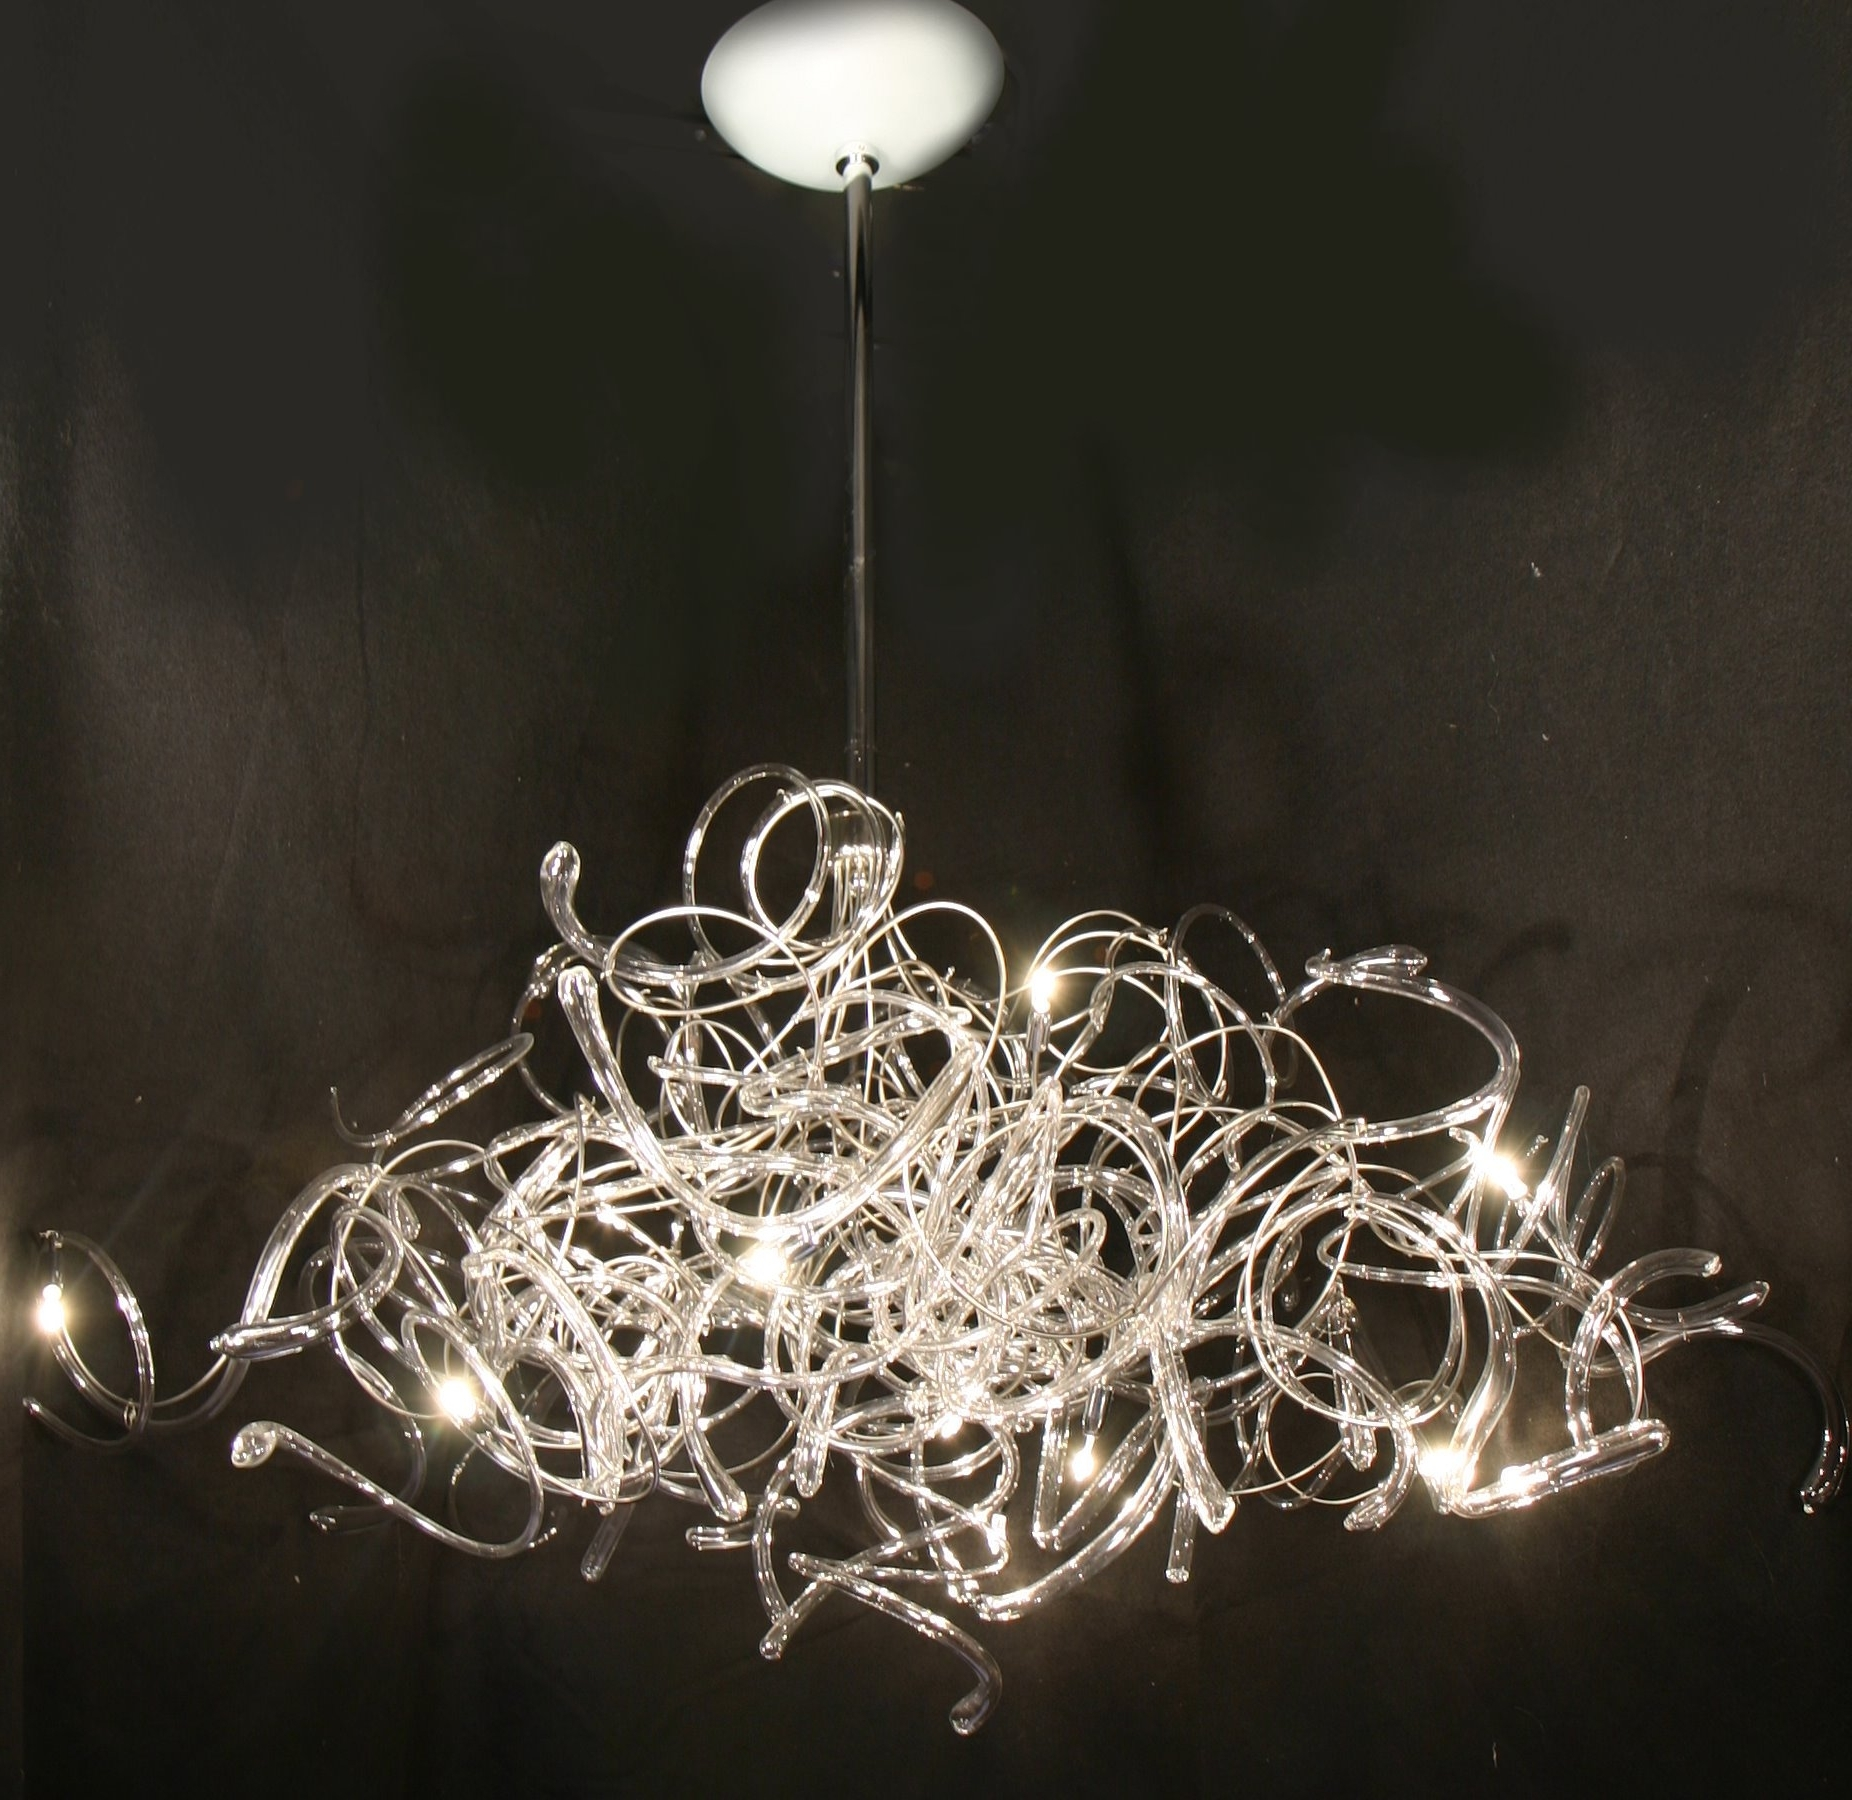 Ultra Modern Chandelier Throughout Fashionable Ultra Modern Chandelier Lighting – Musethecollective (View 2 of 15)